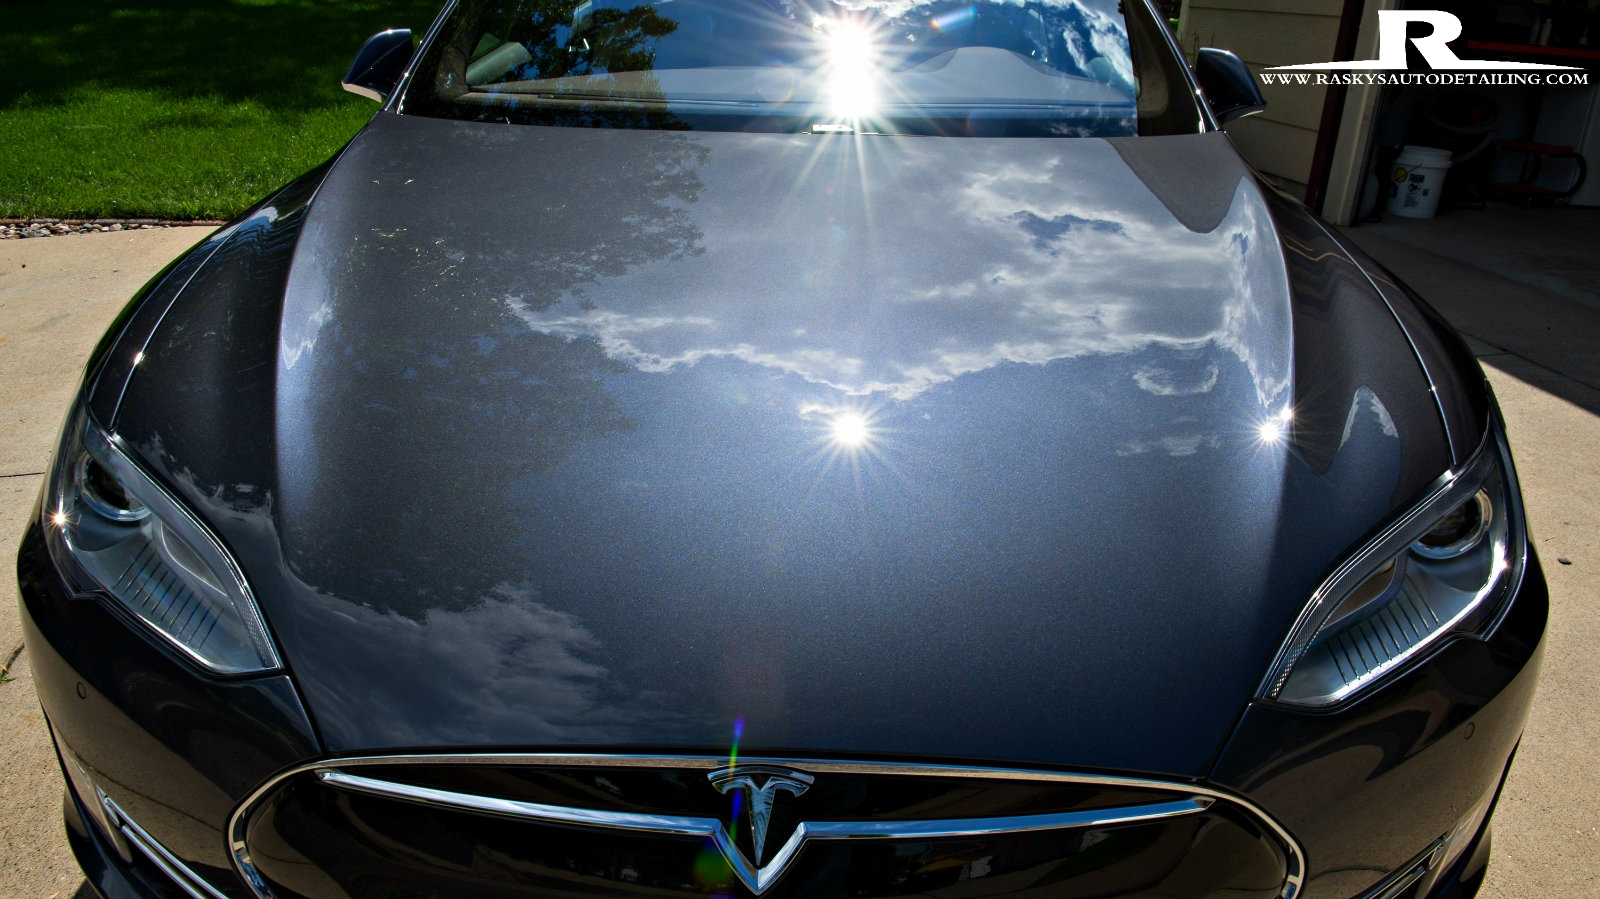 Rasky's Auto Detailing Minneapolis - This Tesla has a glossy aura